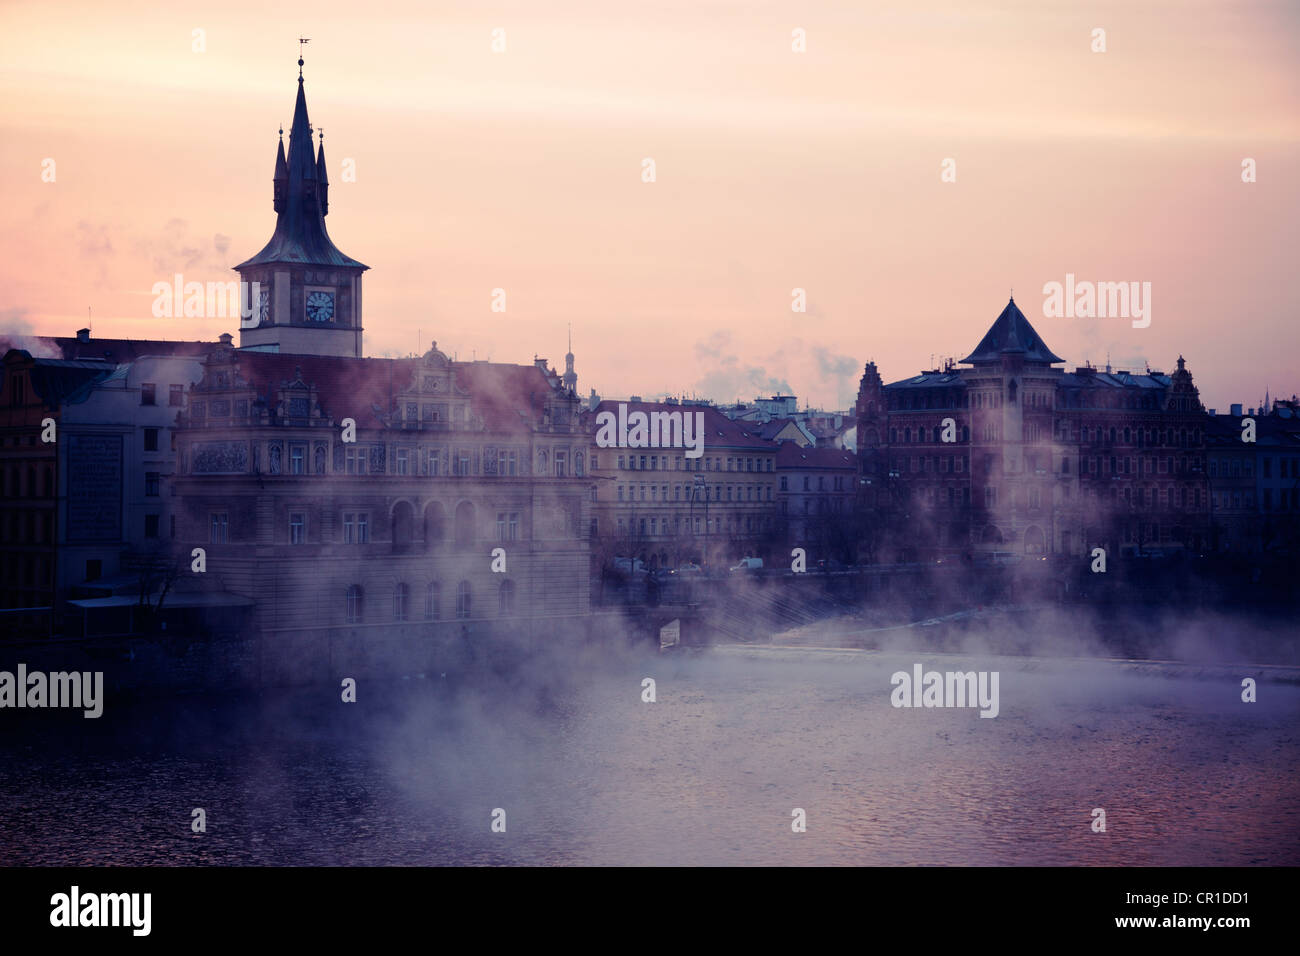 Czech Republic, Prague, View over Vltava River towards Old Town at sunrise - Stock Image